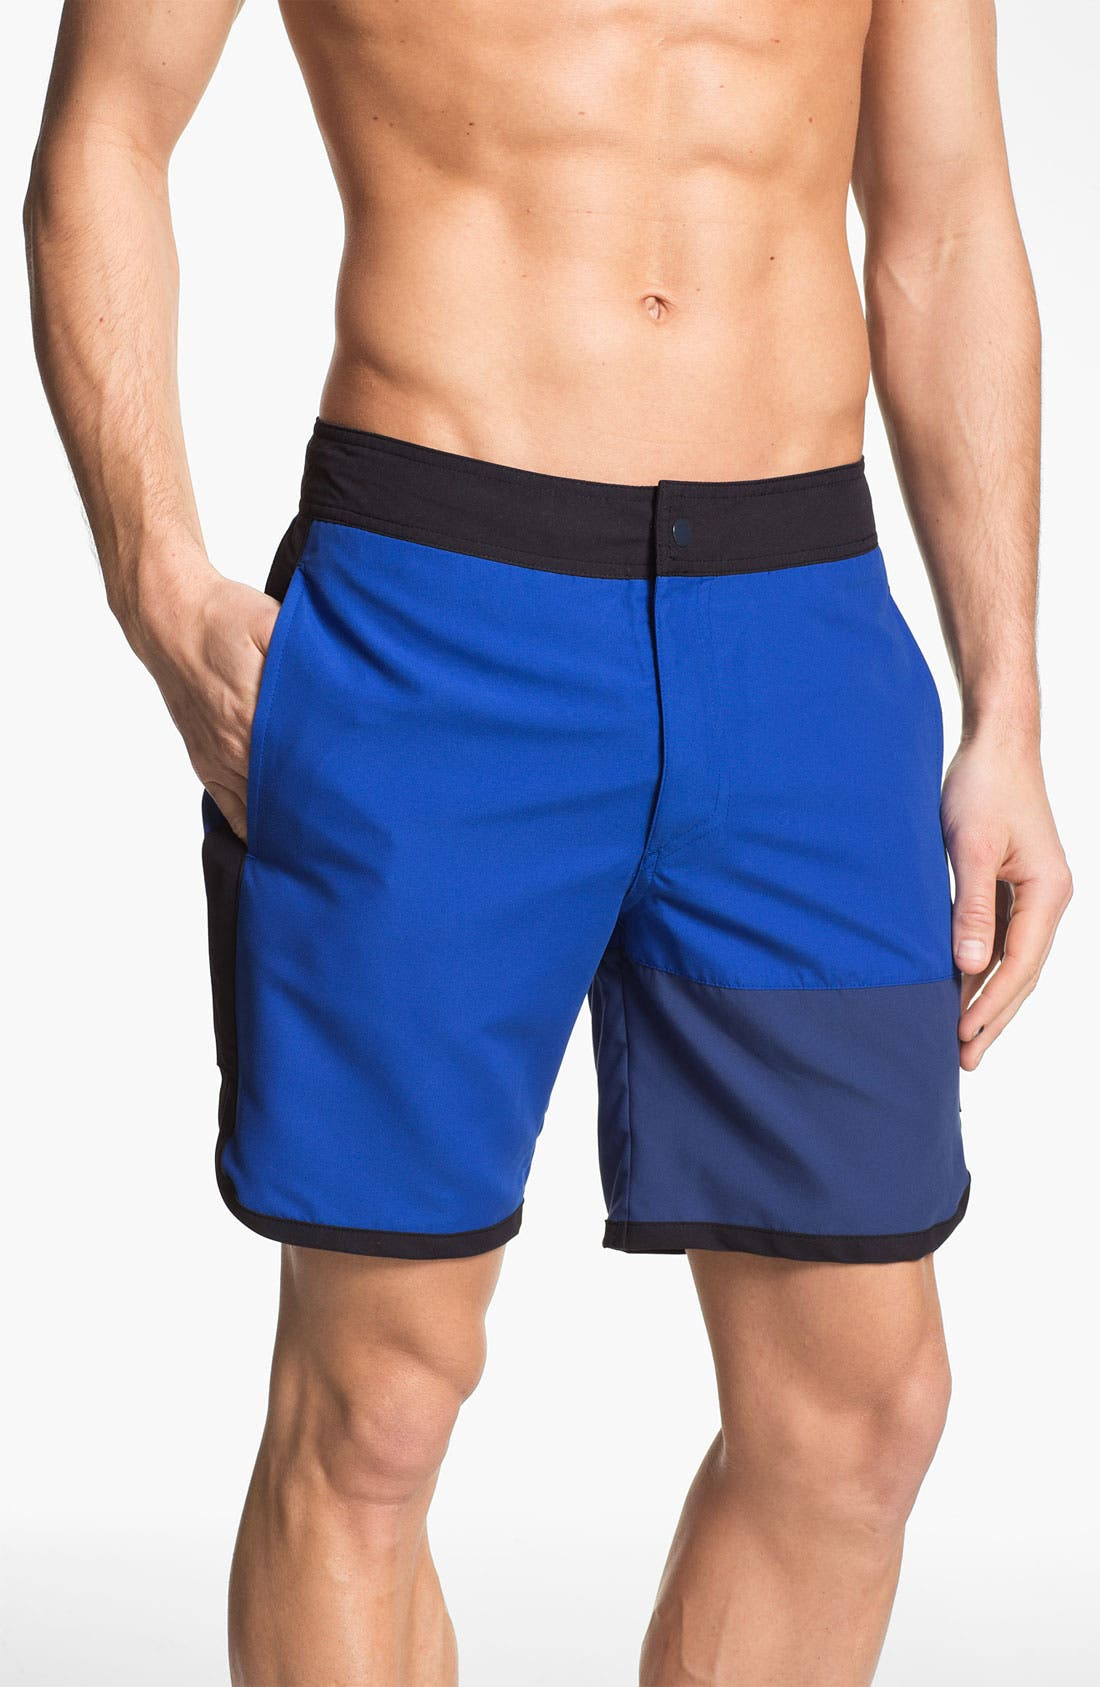 Main Image - Number:LAB Swim Trunks